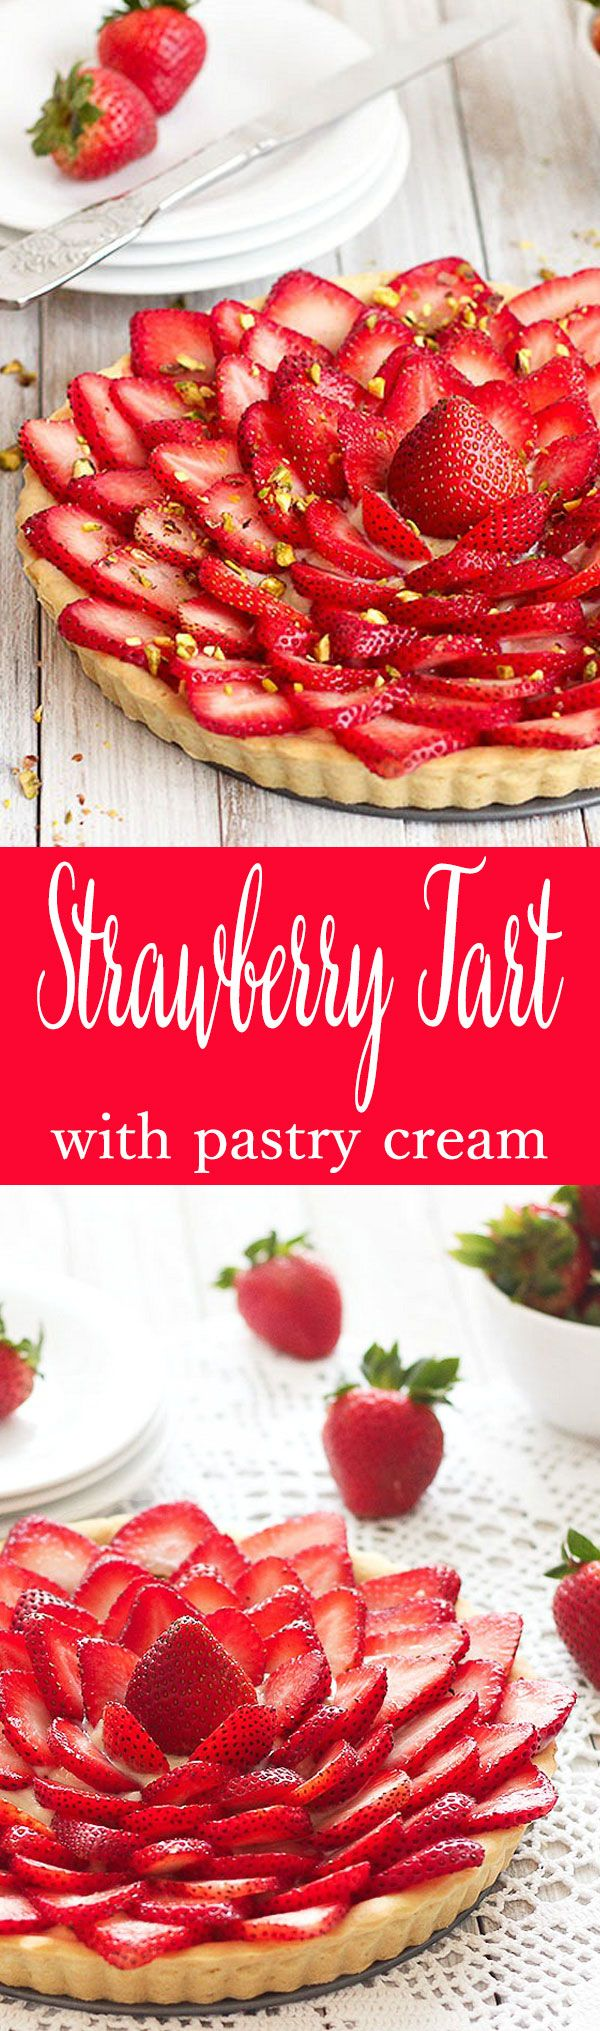 "A ""pasta frolla"" shell filled with a silky-smooth lemon pastry cream and topped with juicy strawberries"